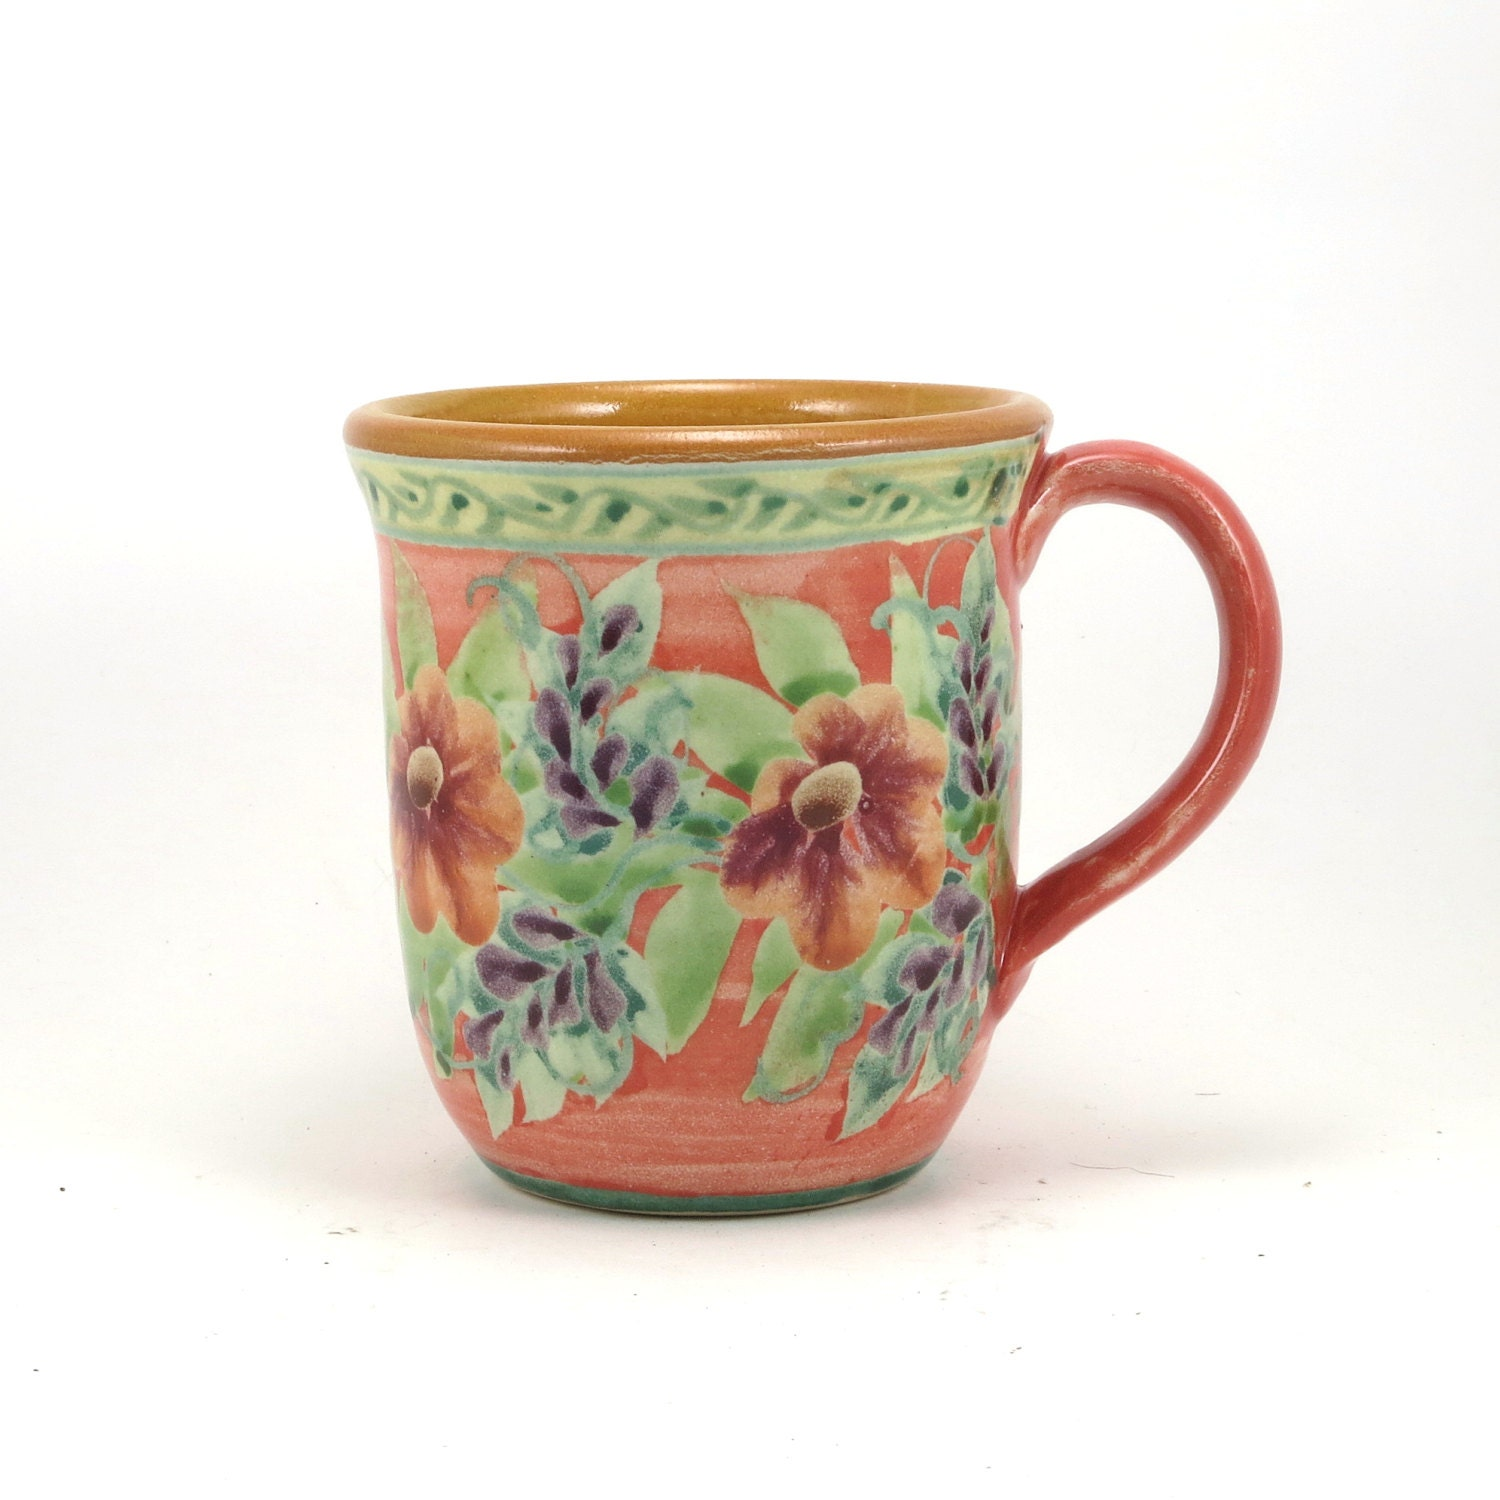 Orange coffee mug handmade porcelain tea cup floral design for Handmade mug designs